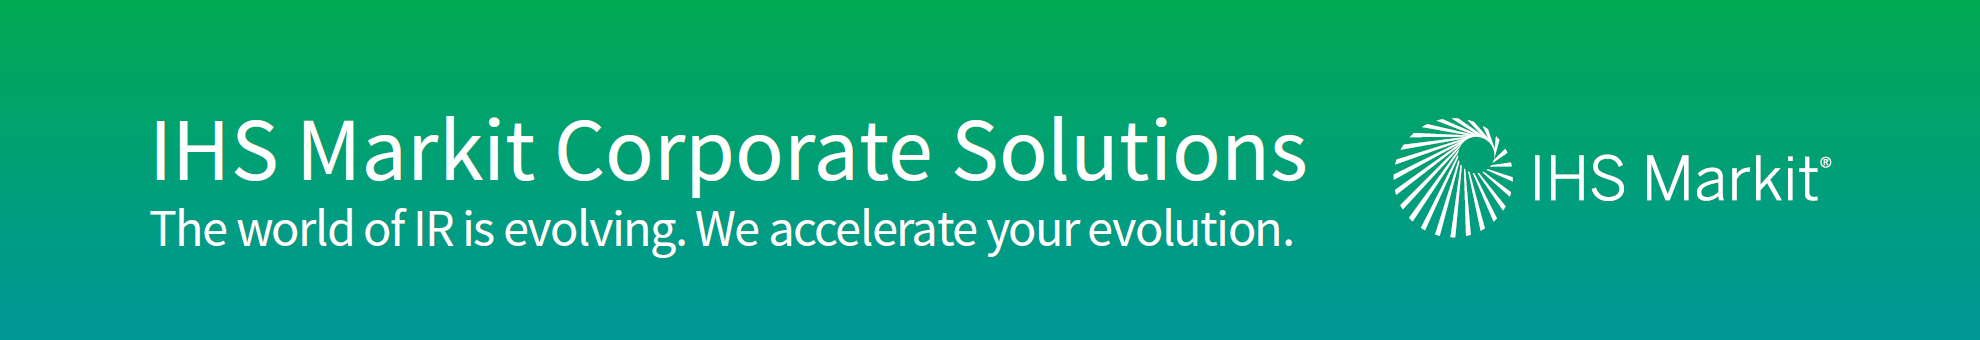 IHS Markit Corporate Solutions - Overview brochure